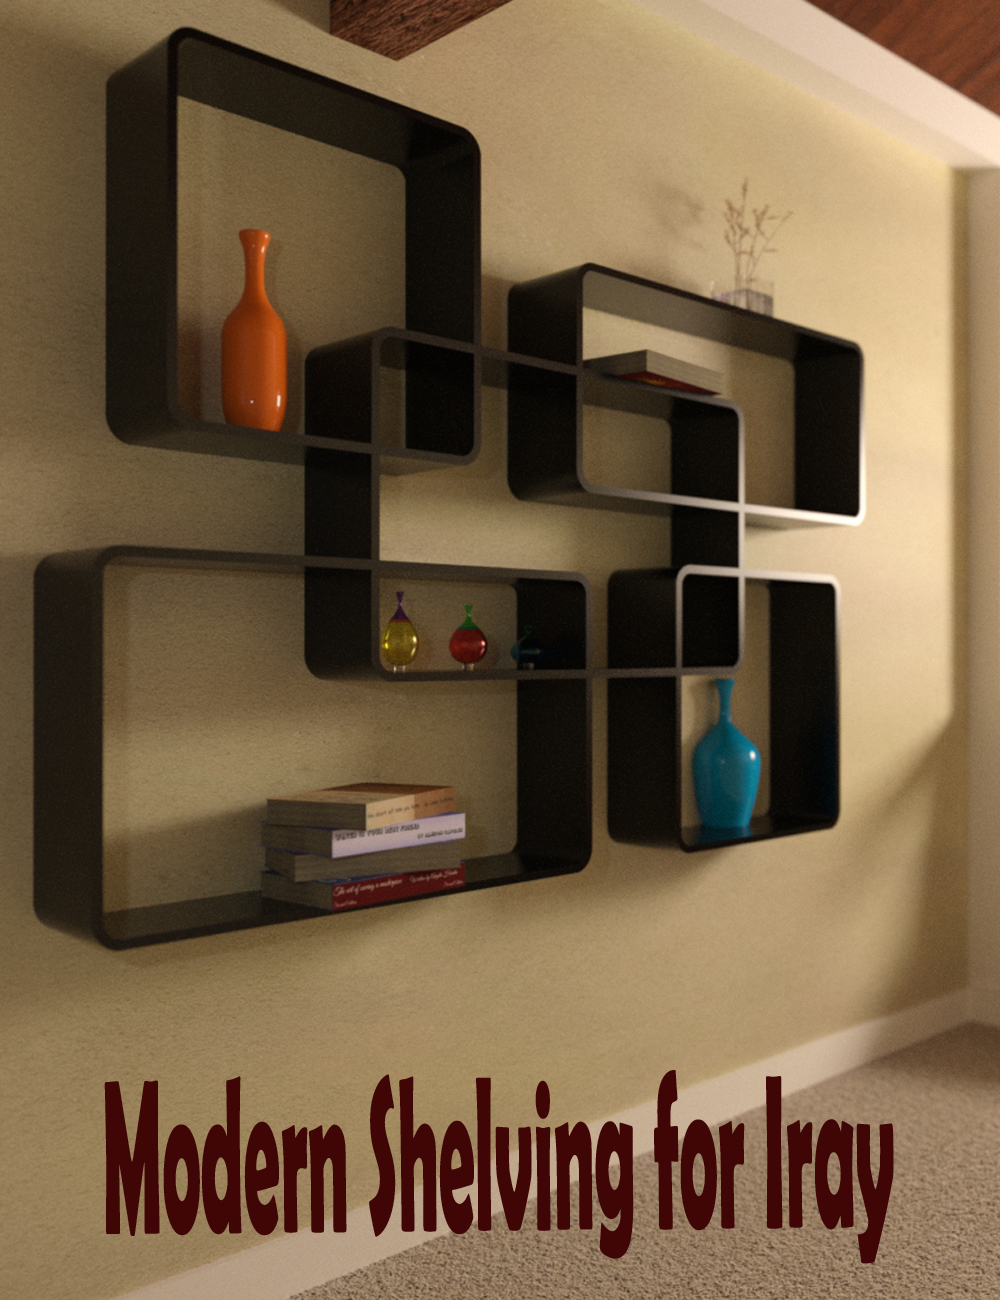 Modern Shelving for Iray by: ImagineX, 3D Models by Daz 3D